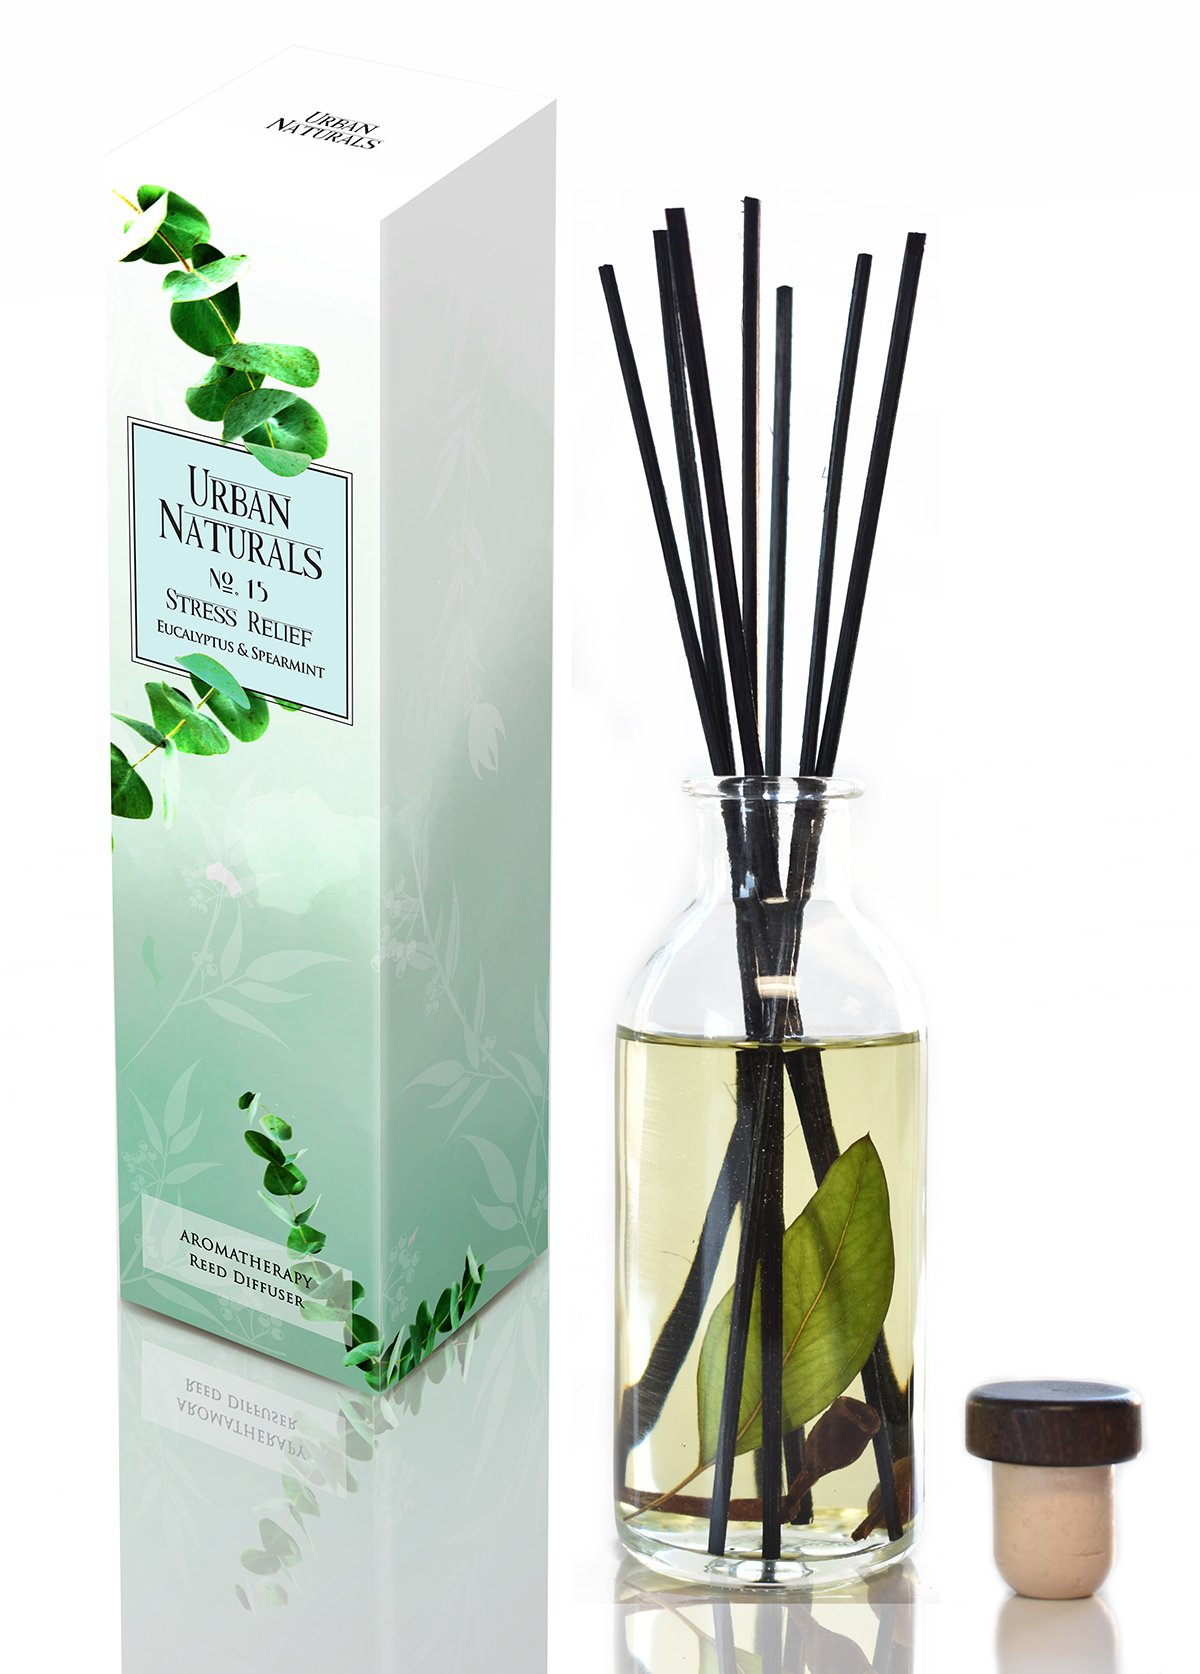 Urban Naturals Eucalyptus Spearmint Stress Relief Aromatherapy Diffuser Gift Set | Fragrance Your Space | Fresh Scented Room Freshener + Home Decor | Home Gift Idea. Vegan.